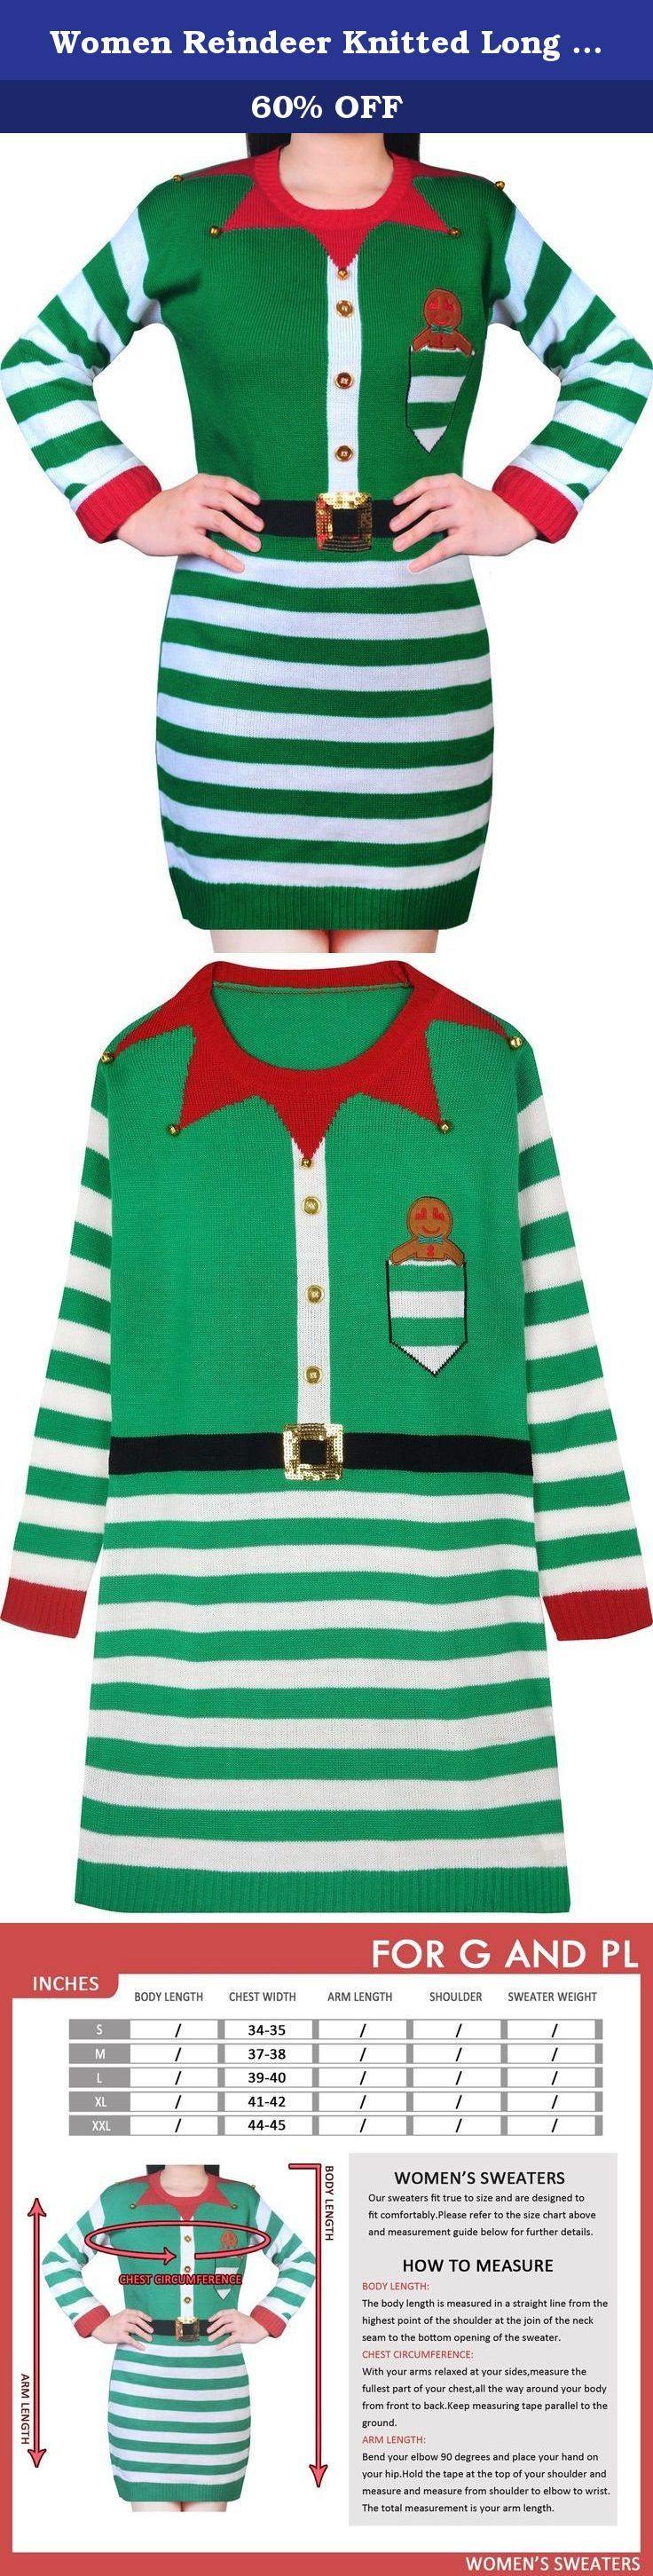 Women Reindeer Knitted Long Sleeve Christmas Xmas Fleece Pullover Sweatshirt Sweater Jumper Green XL. For G and PL Women's Ugly Christmas Sweaters / Cardigans / Sweater Dress 100% Premiere Acrylic Ugly Christmas Sweater Made For G and PL. Well Made Double Panel Construction and Reinforced Seams. Fast Ship(FBA):Fulfilled by Amazon with two-day Shipping (Ship from USA) Size of our products is Matching With US Size, Fits to Amazon Regular Women Sweaters Size! Fits True to Size.Please See…